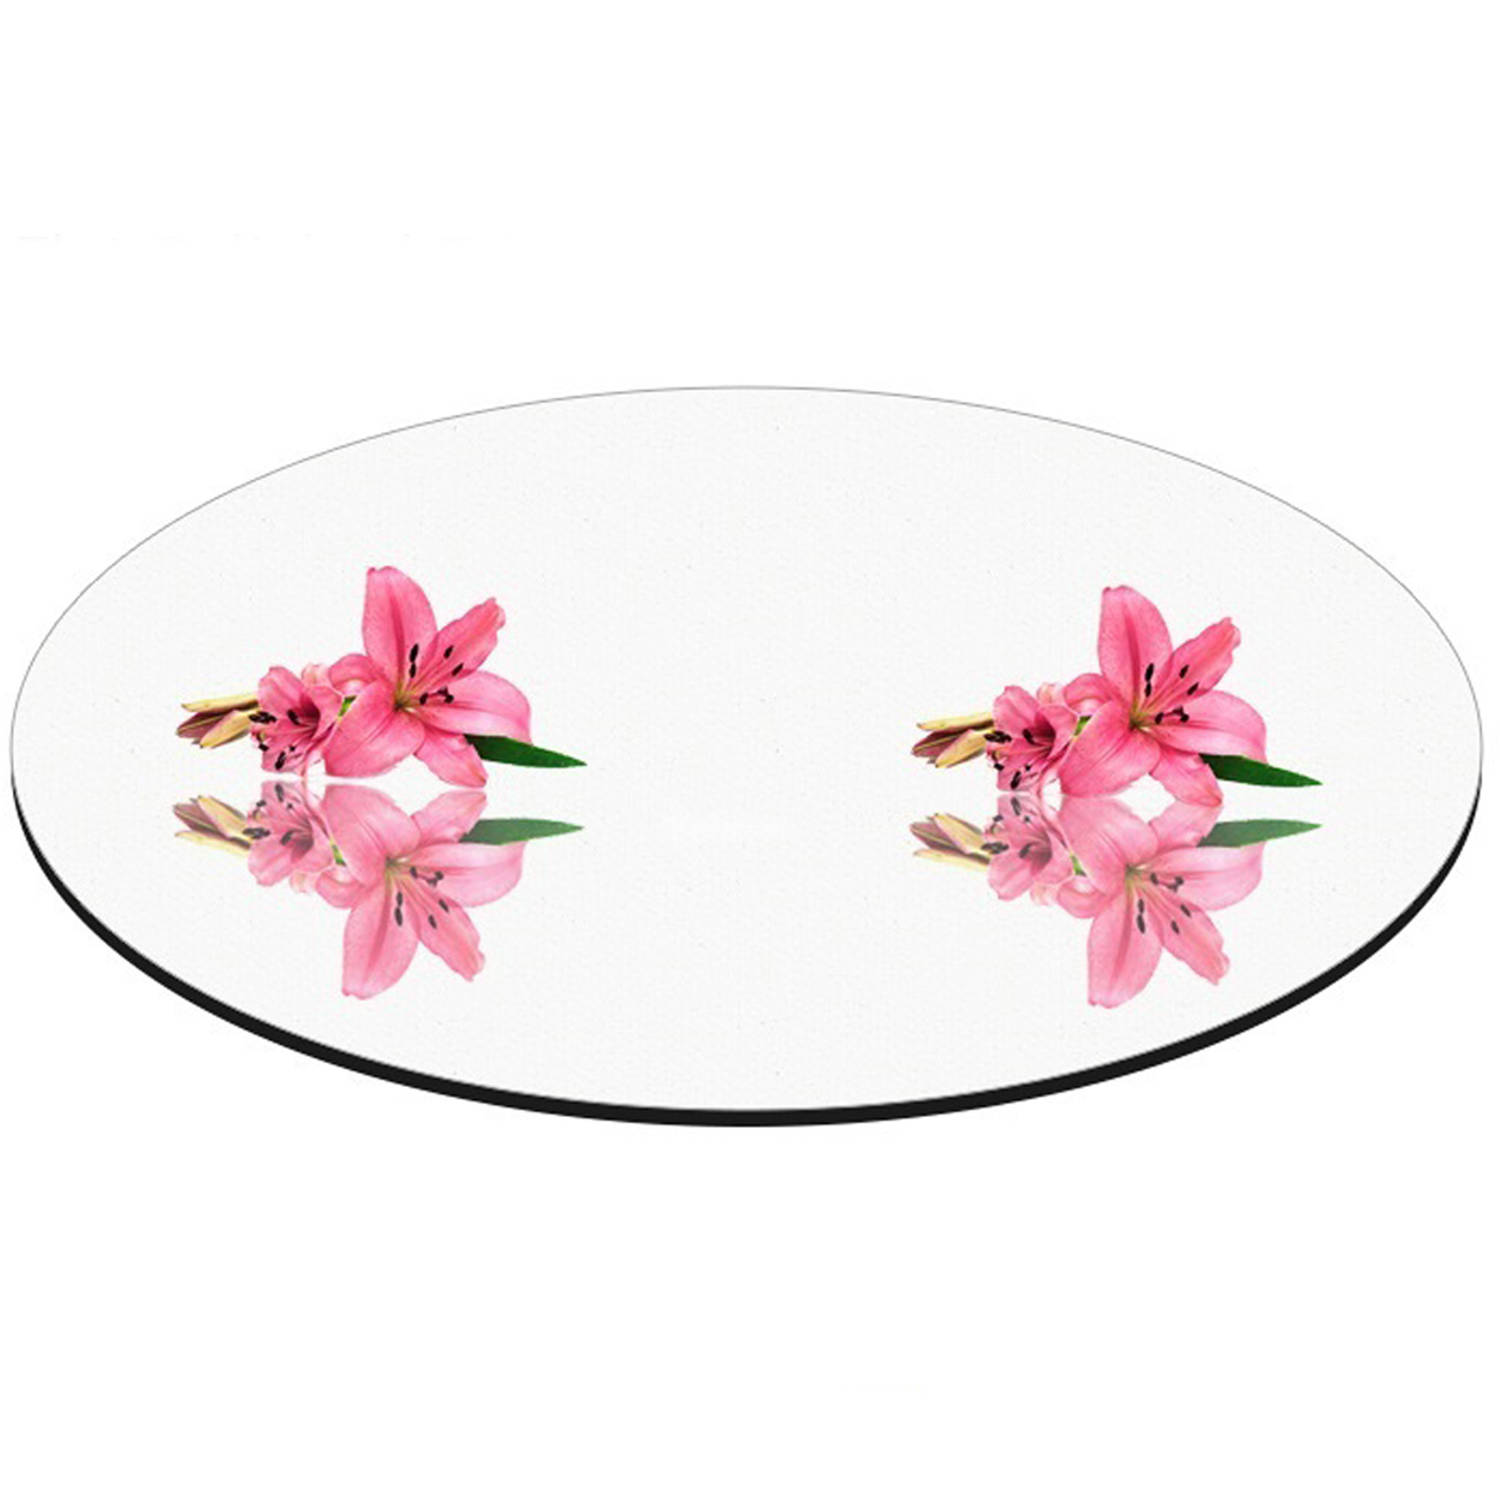 "6"" Round Mirror Centerpiece Plate by Fab Glass and Mirror"